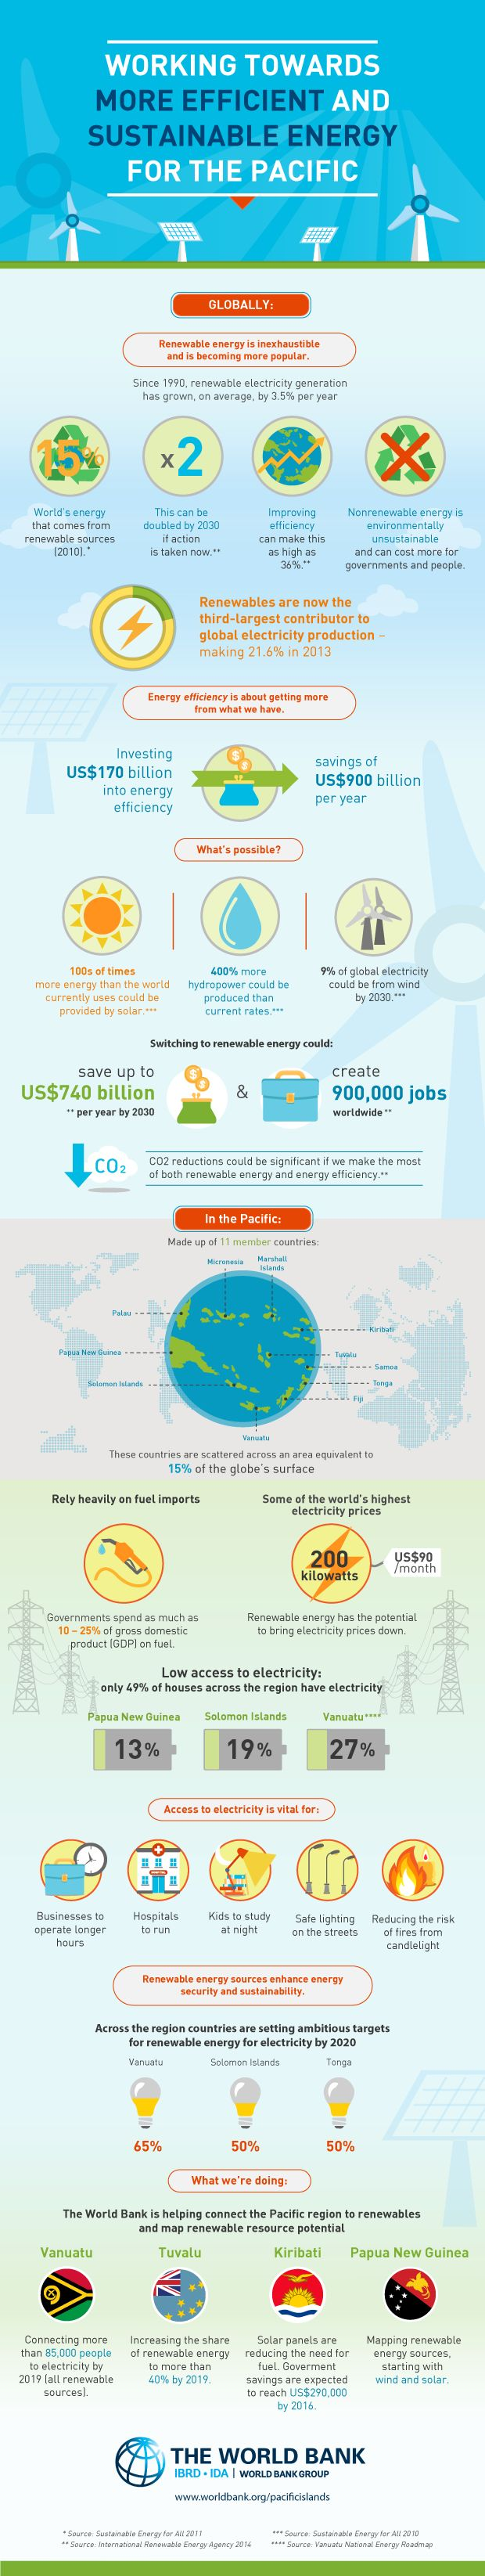 Working Towards more Efficient and Sustainable Energy for the Pacific Islands. #infographic #infografis #worldbank